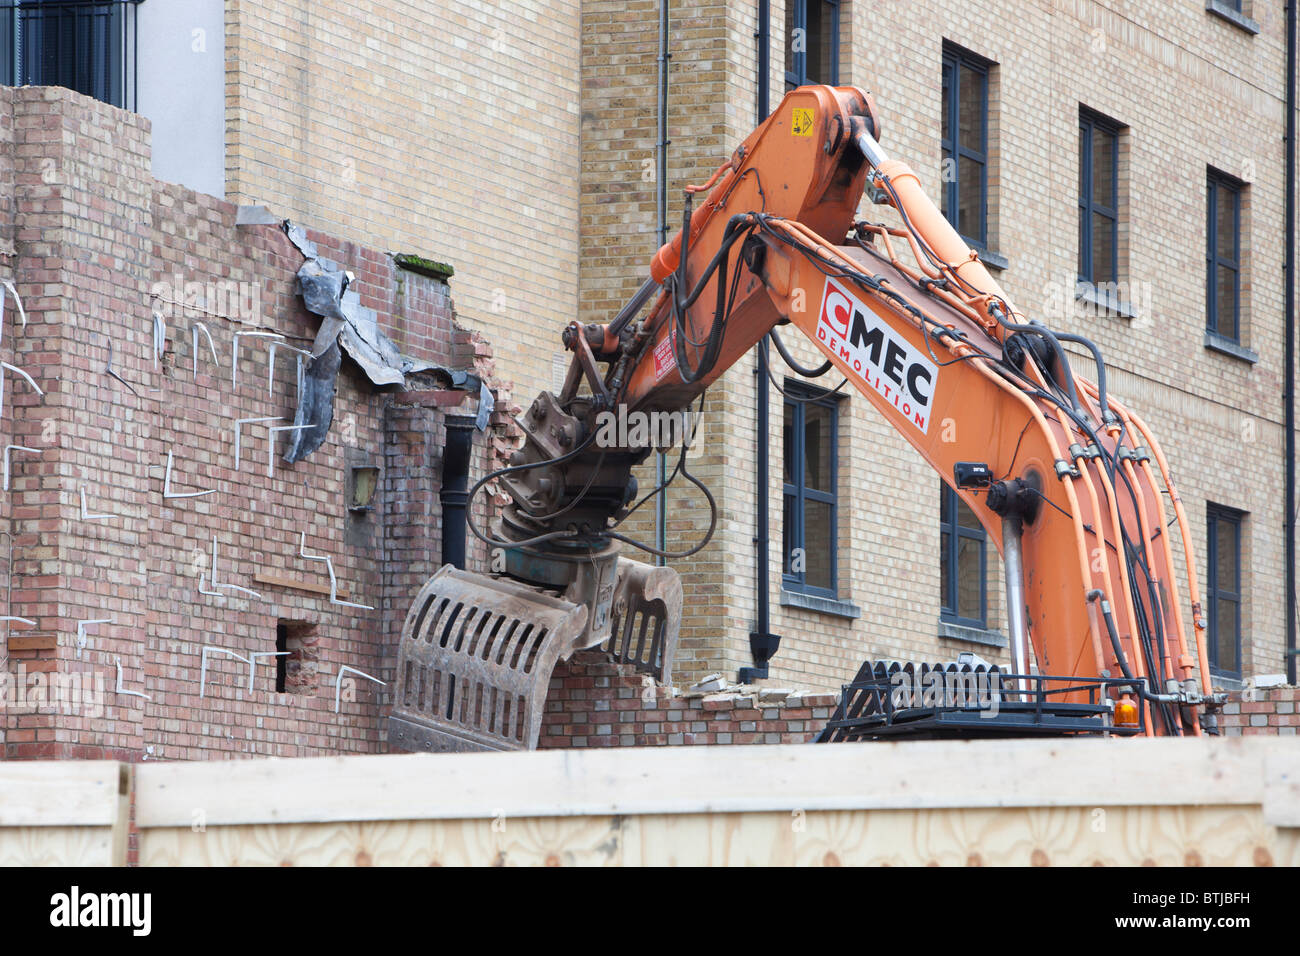 A building being demolished near the Angel tube in london, UK. - Stock Image